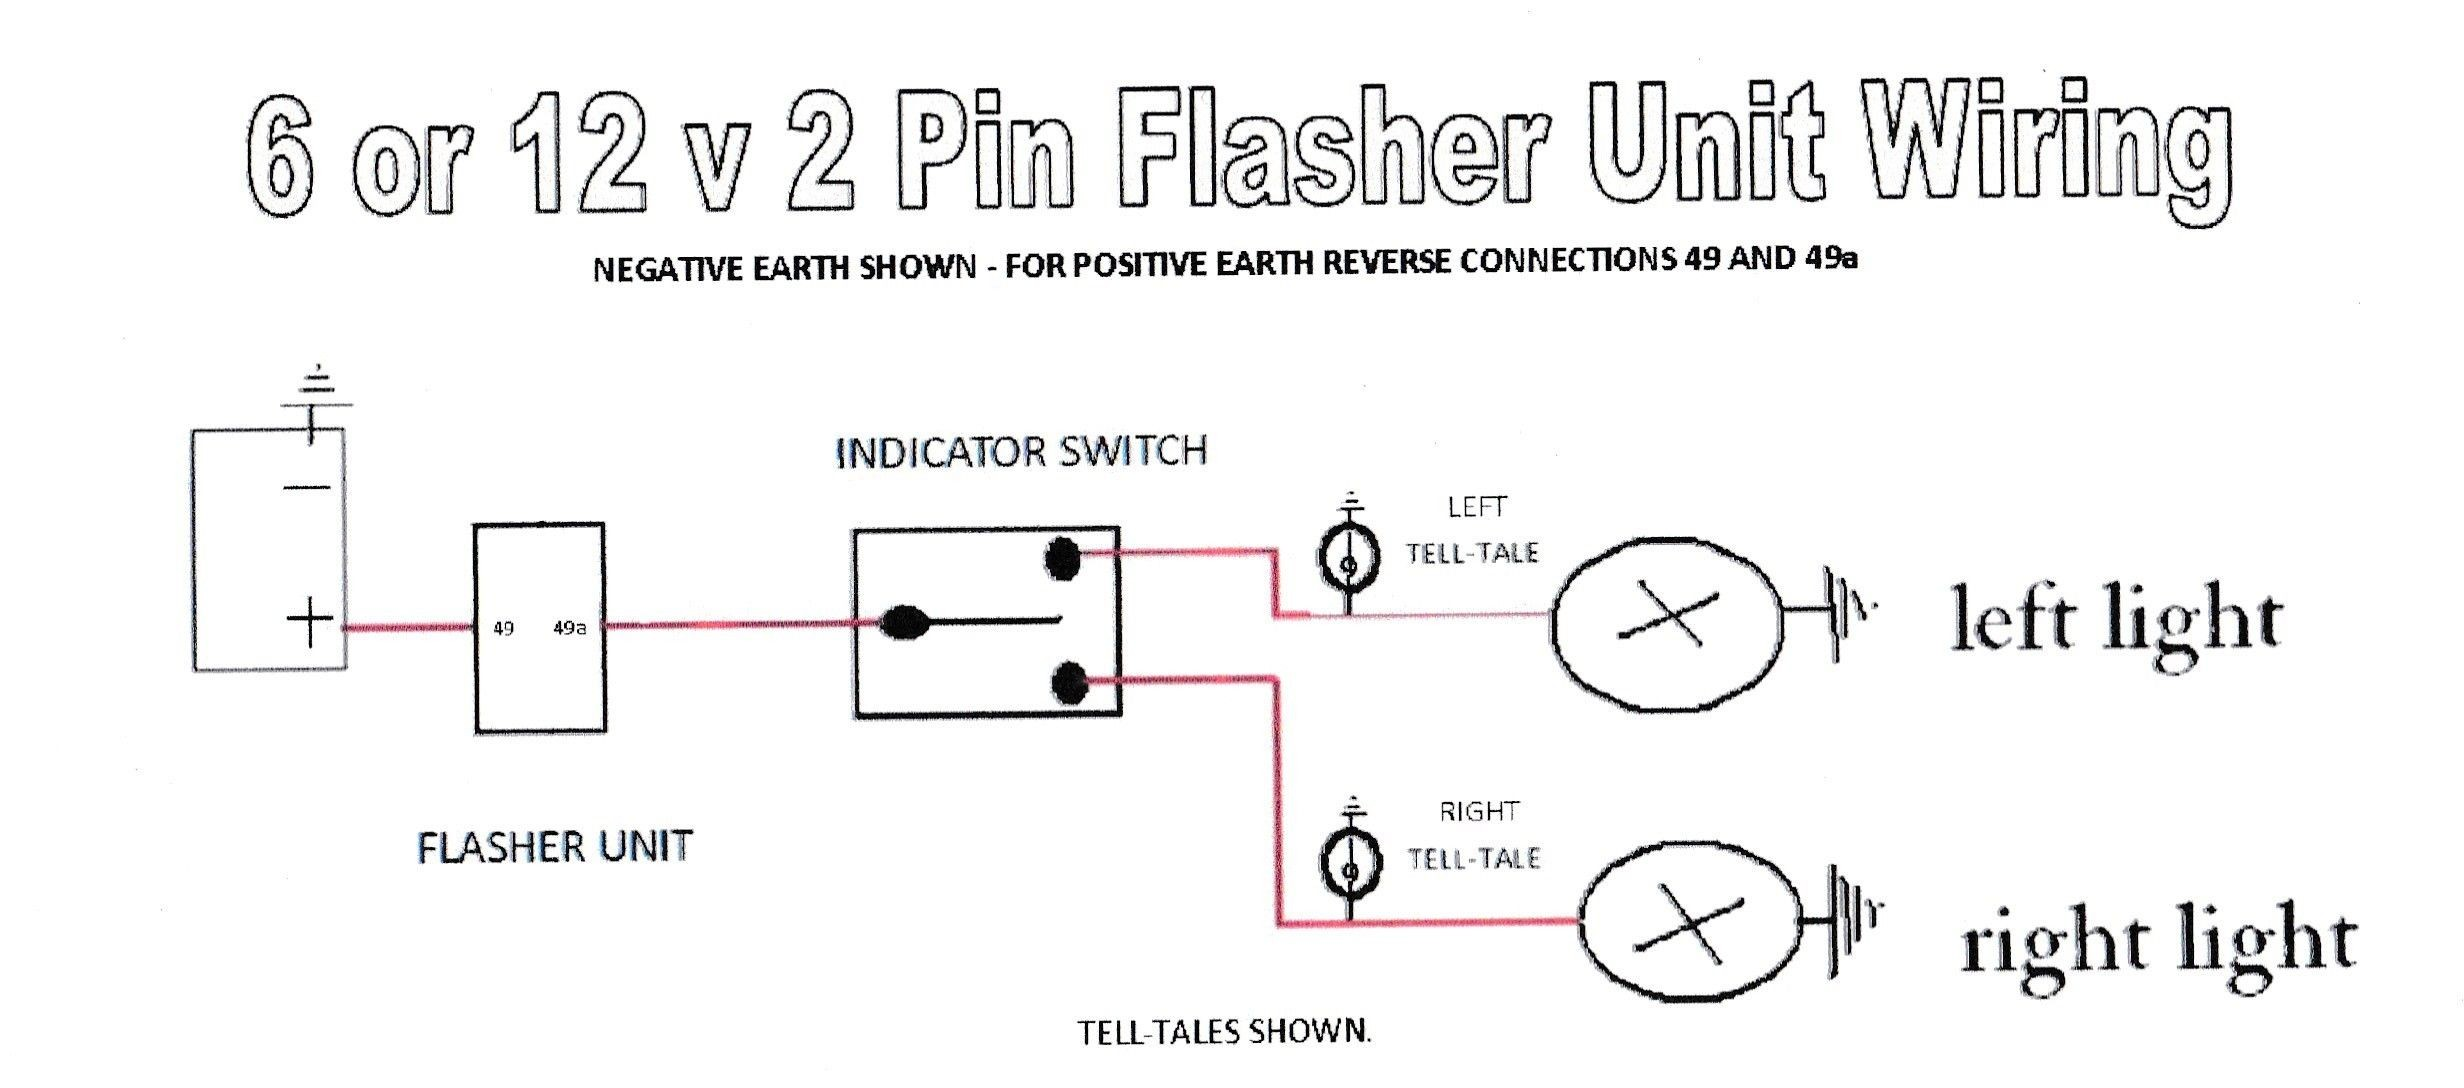 Wiring Diagram for 3 Prong Flasher 3 Terminal Flasher Wiring Diagram Wiring Diagram Schematic Of Wiring Diagram for 3 Prong Flasher